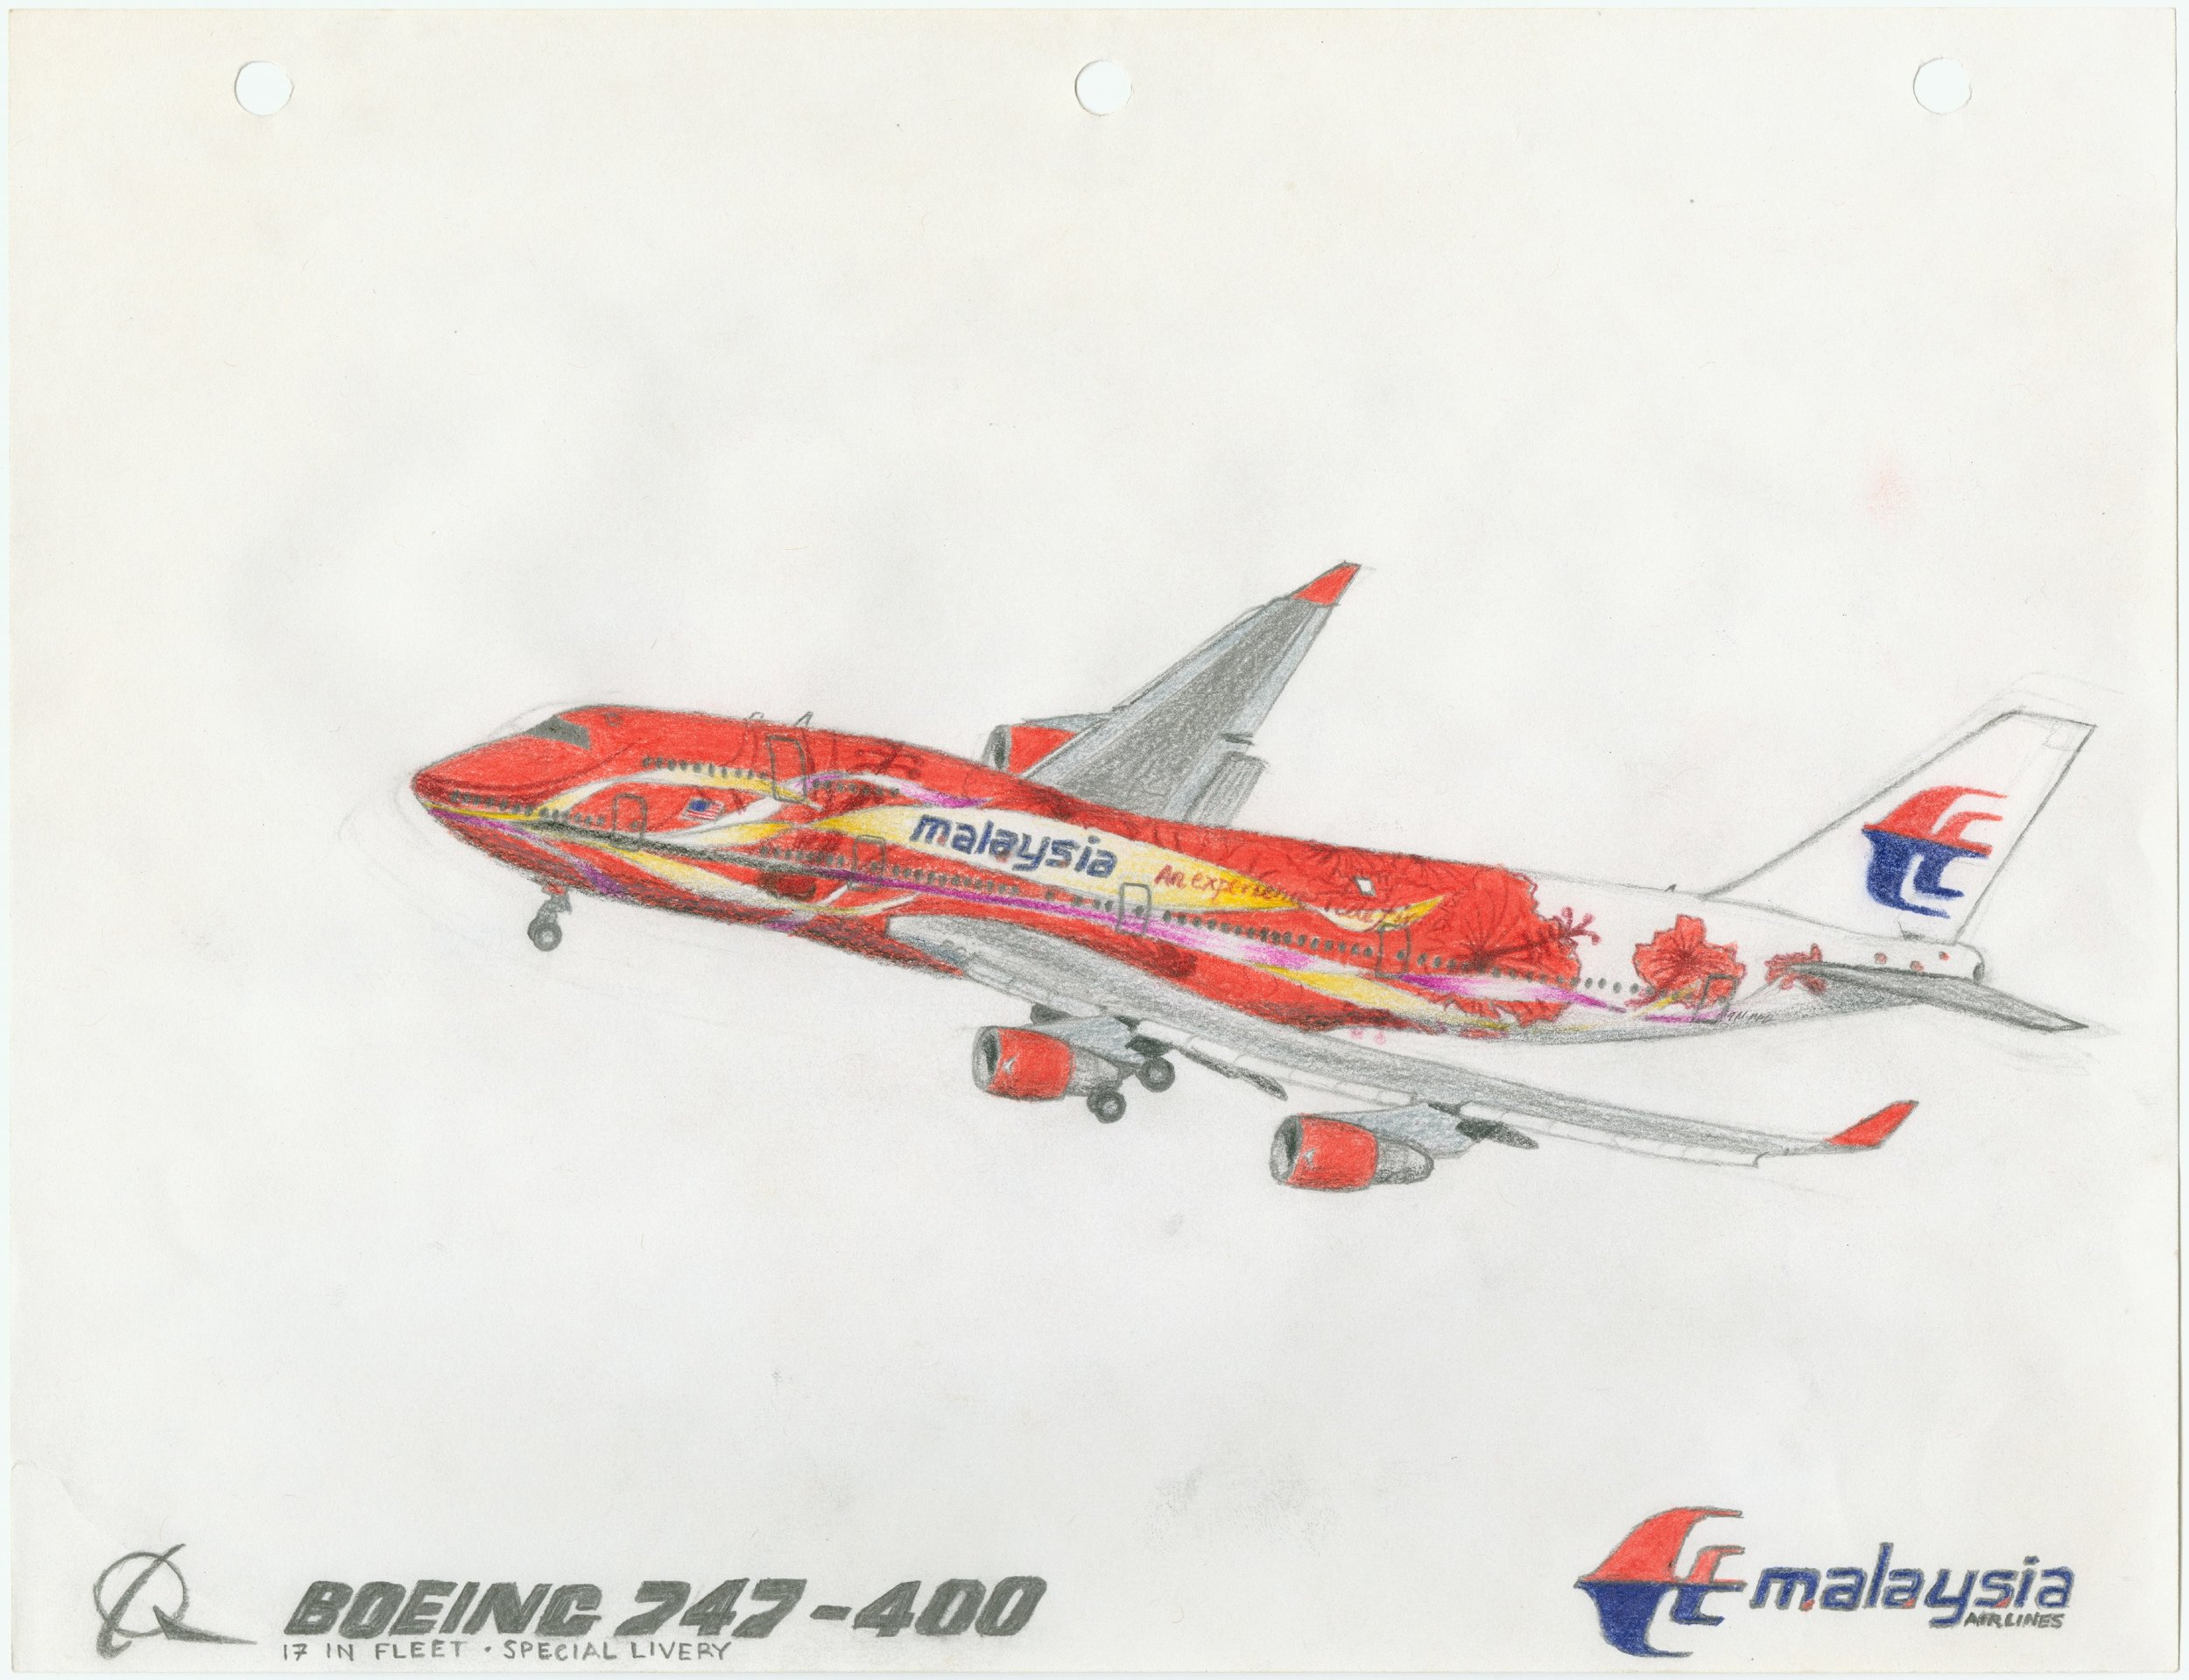 2007 - 006 - Malaysia Airlines planes.pdf0001.jpg